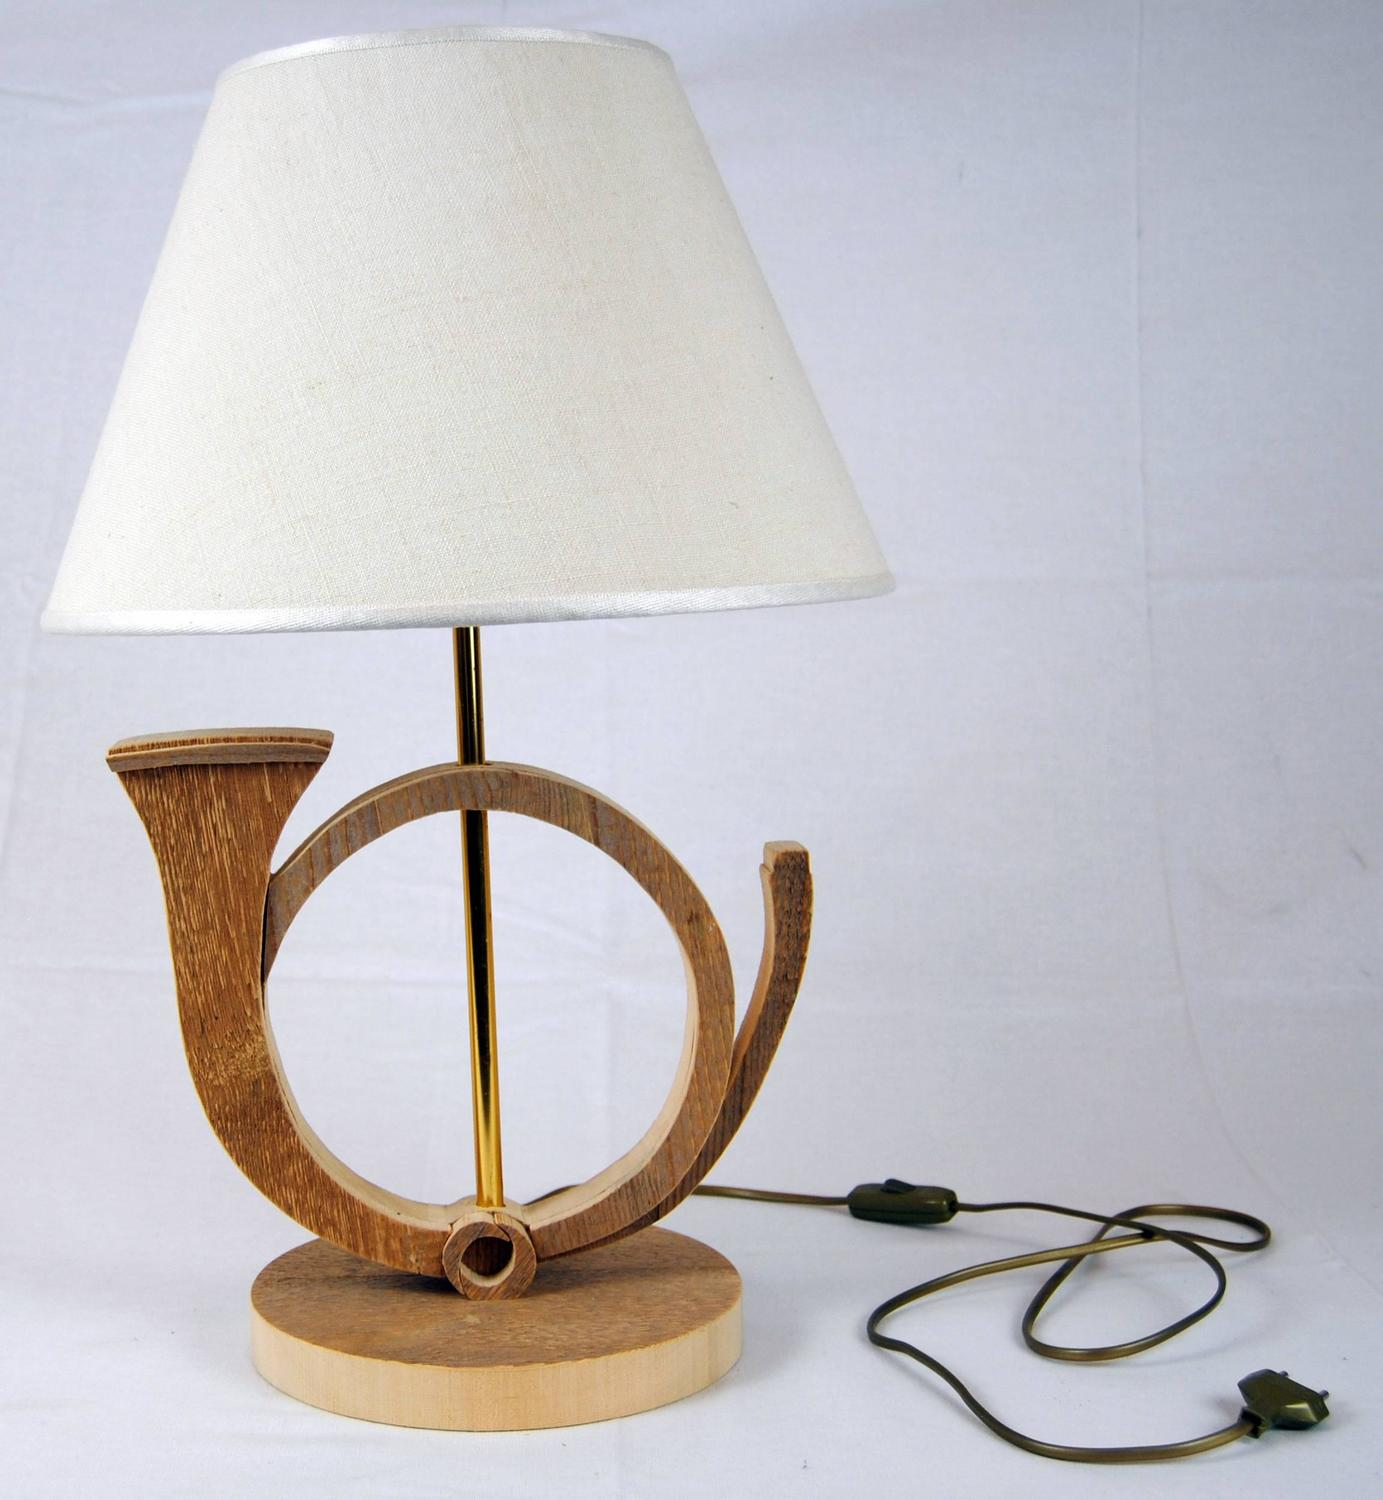 wood horn table lamp by michelangeli italy for sale at 1stdibs. Black Bedroom Furniture Sets. Home Design Ideas